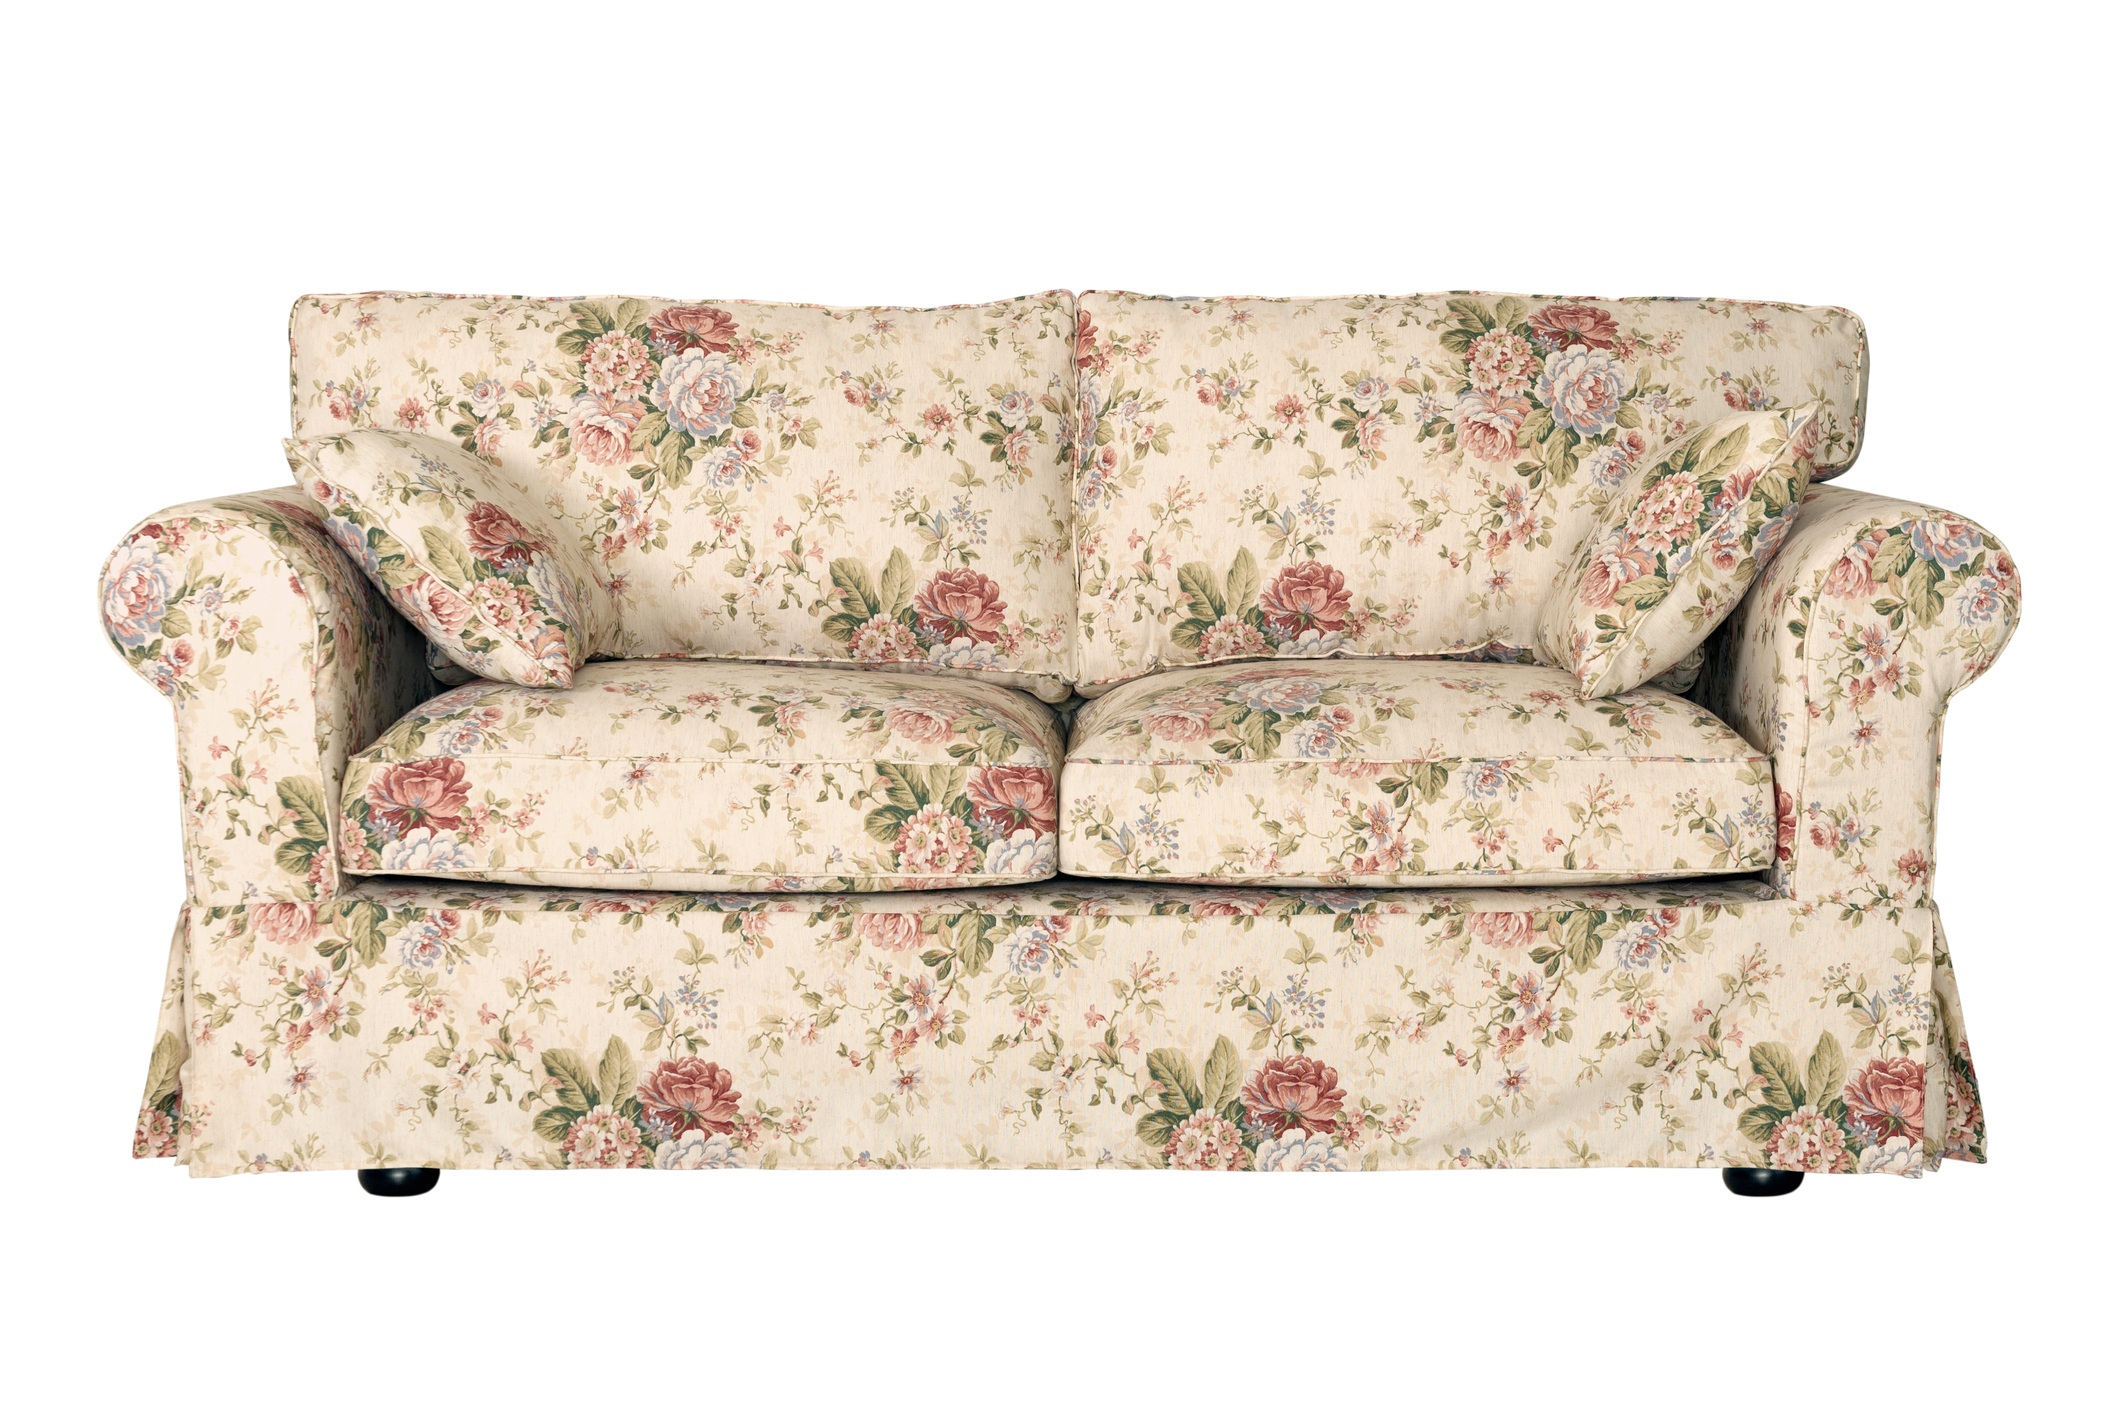 Floral couch sofa